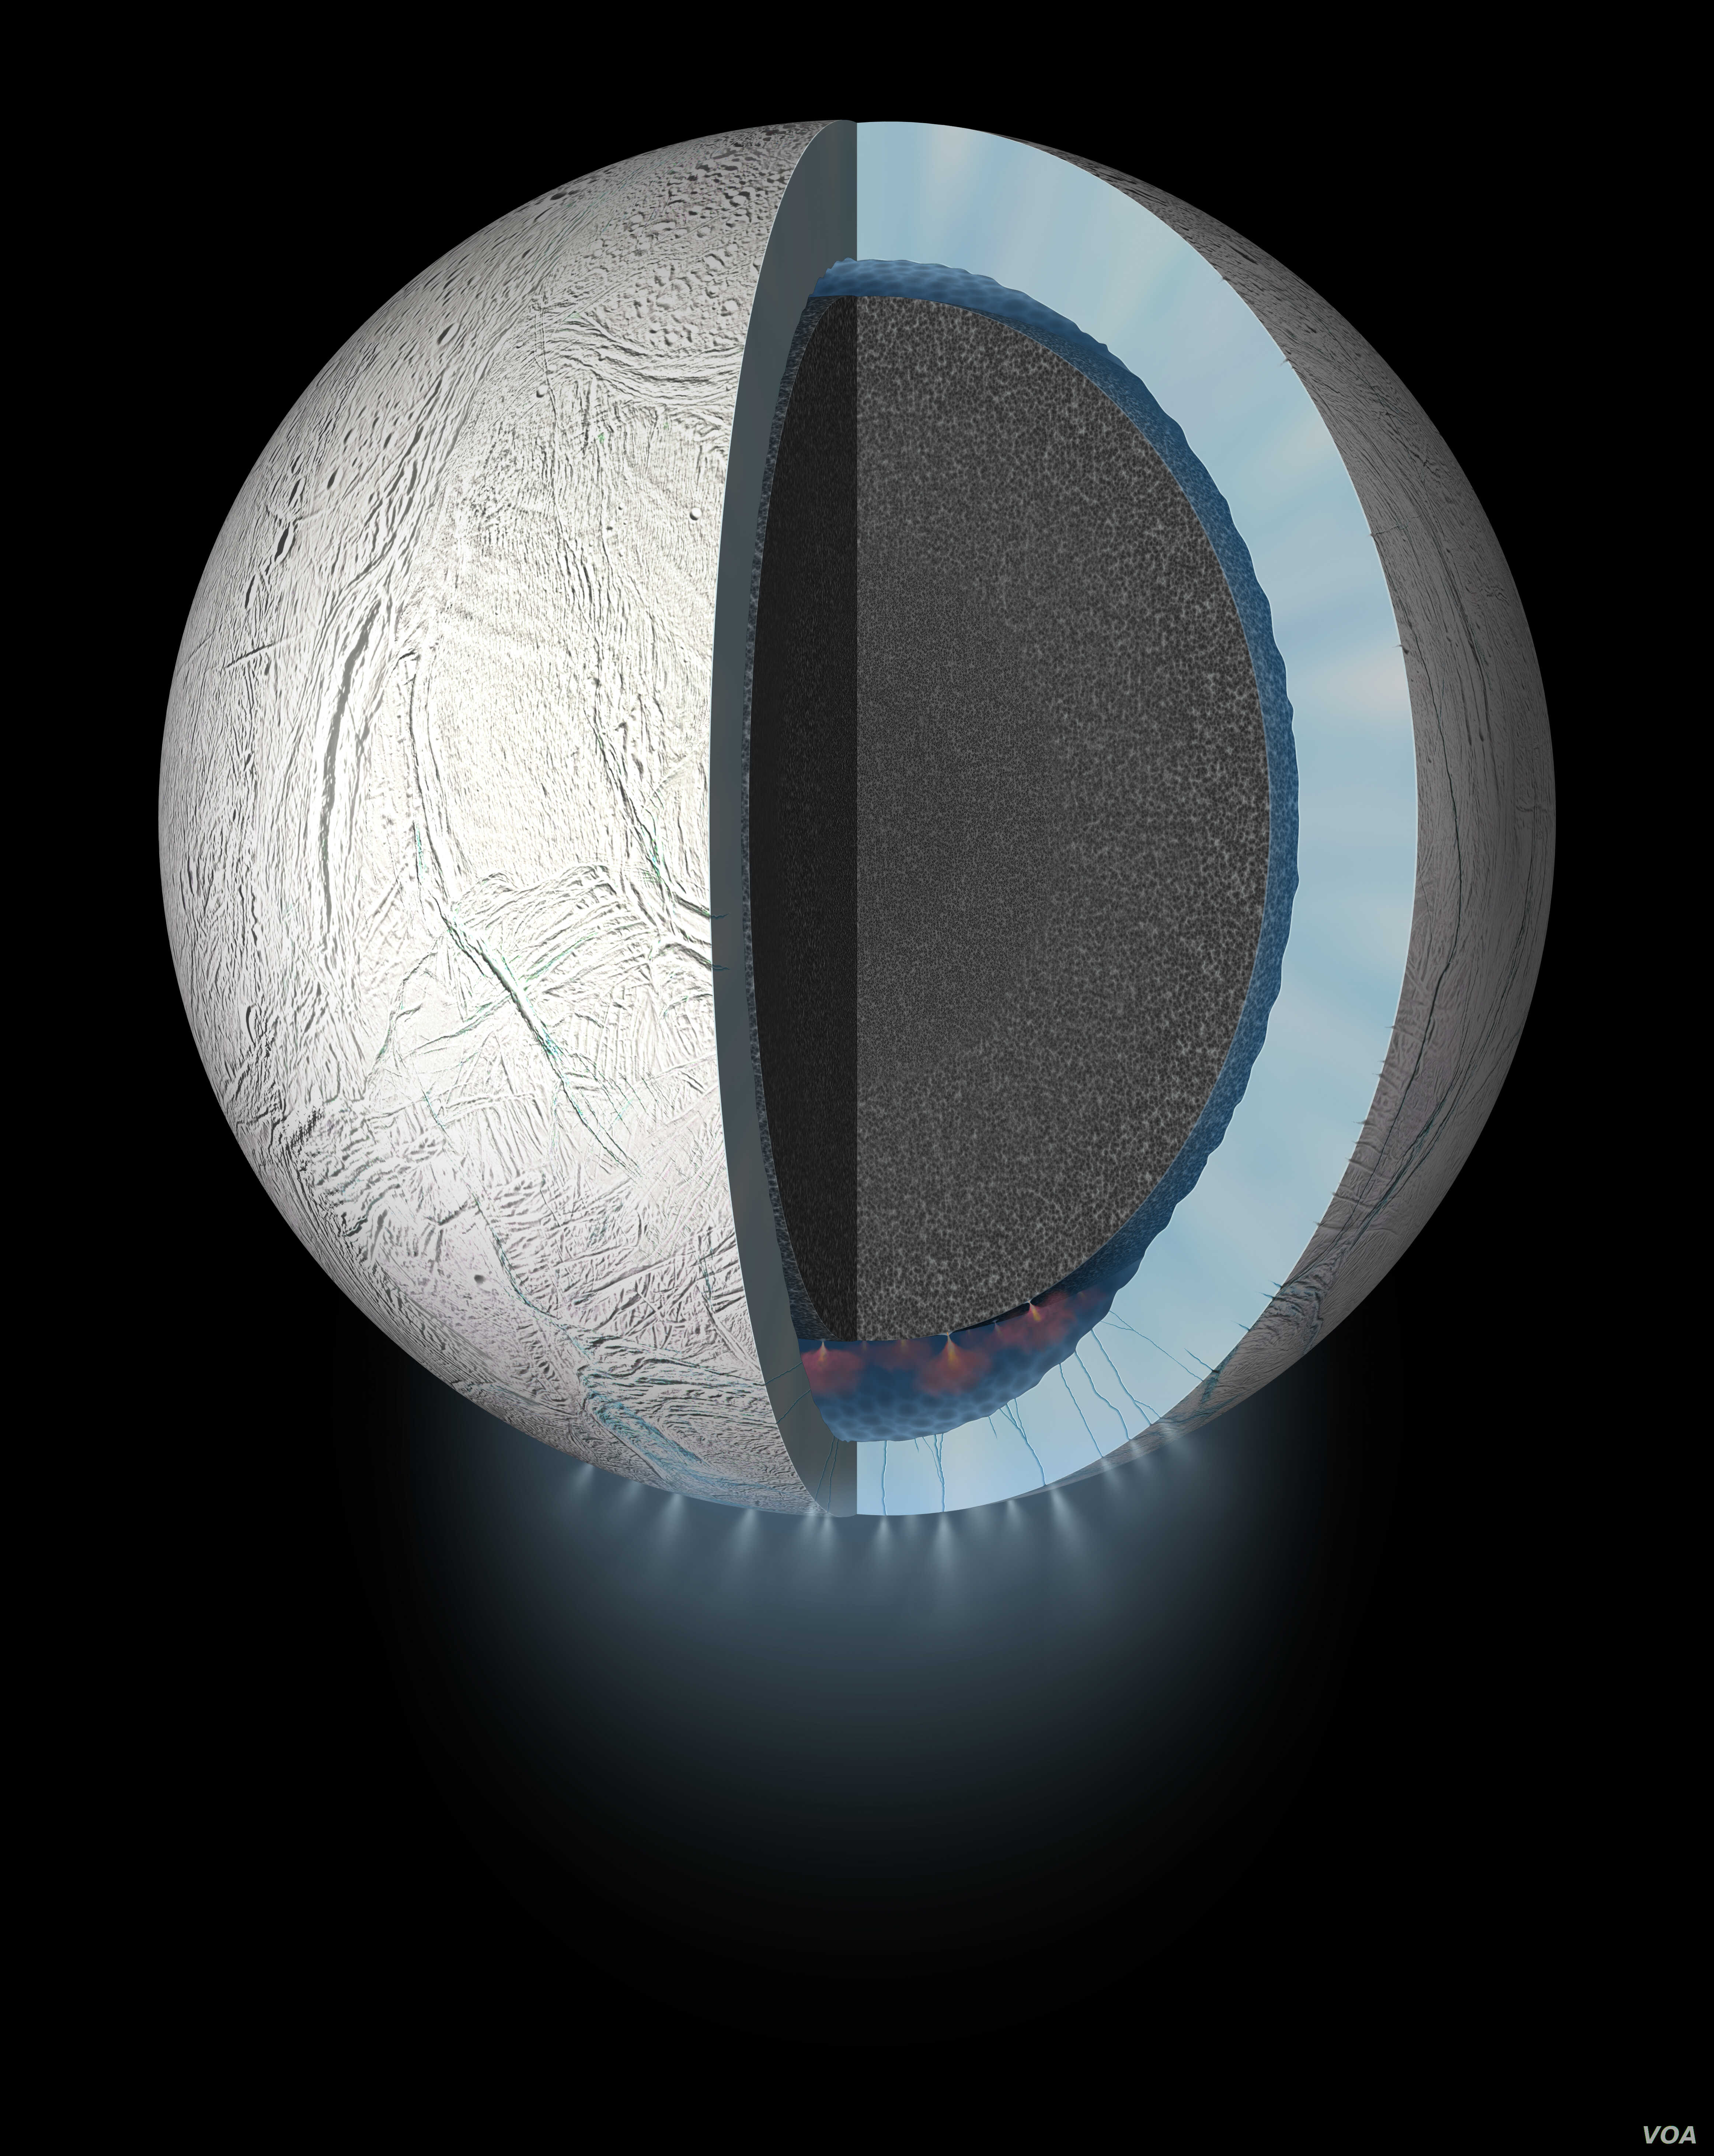 This artist's rendering showing a cutaway view into the interior of Saturn's moon Enceladus. NASA's Cassini spacecraft discovered the moon has a global ocean and likely hydrothermal activity. A plume of ice particles, water vapor and organic mo...